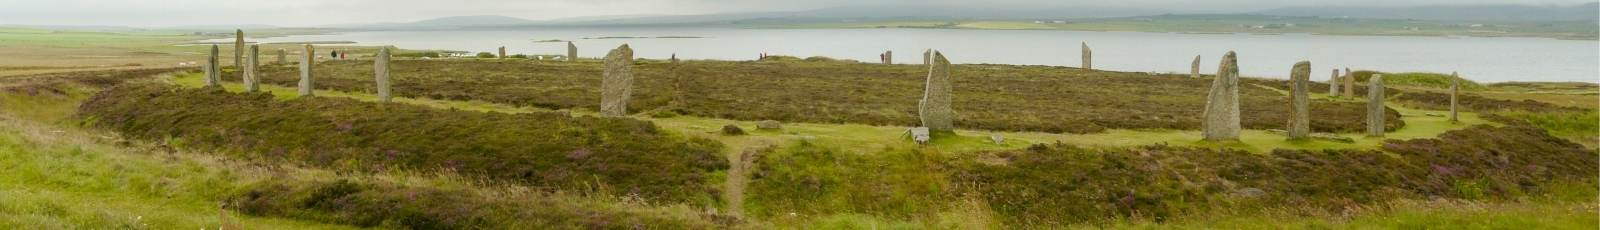 RingOfBrodgar1